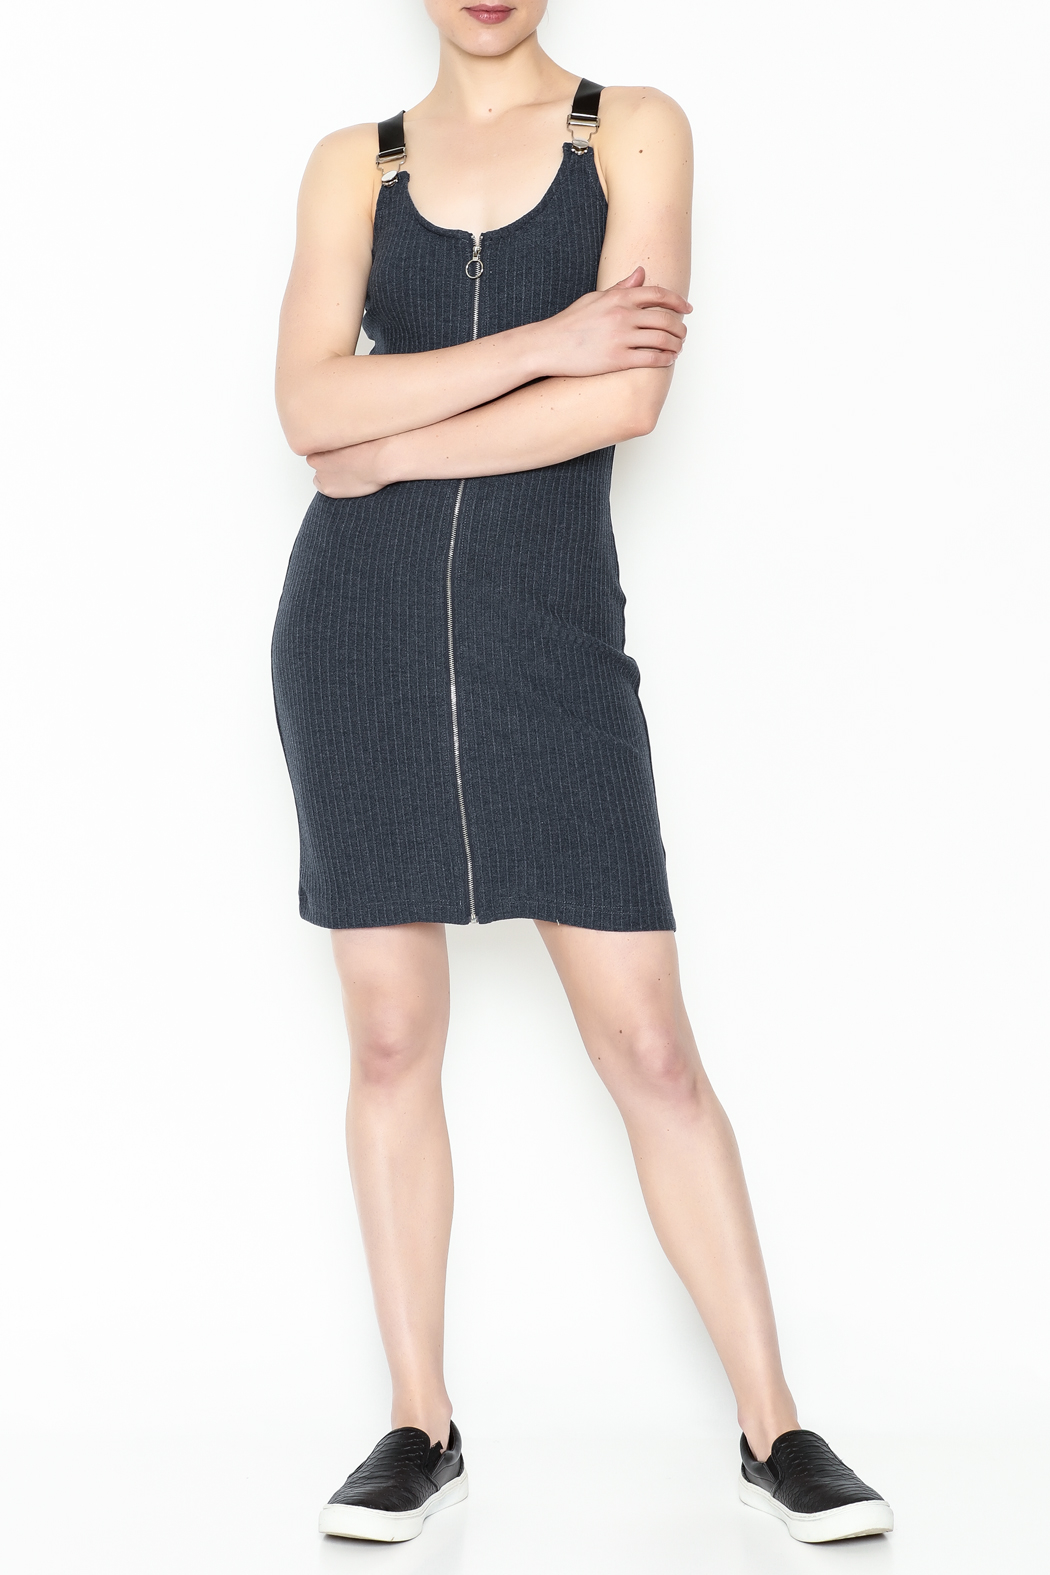 storia Black Strap Dress - Side Cropped Image